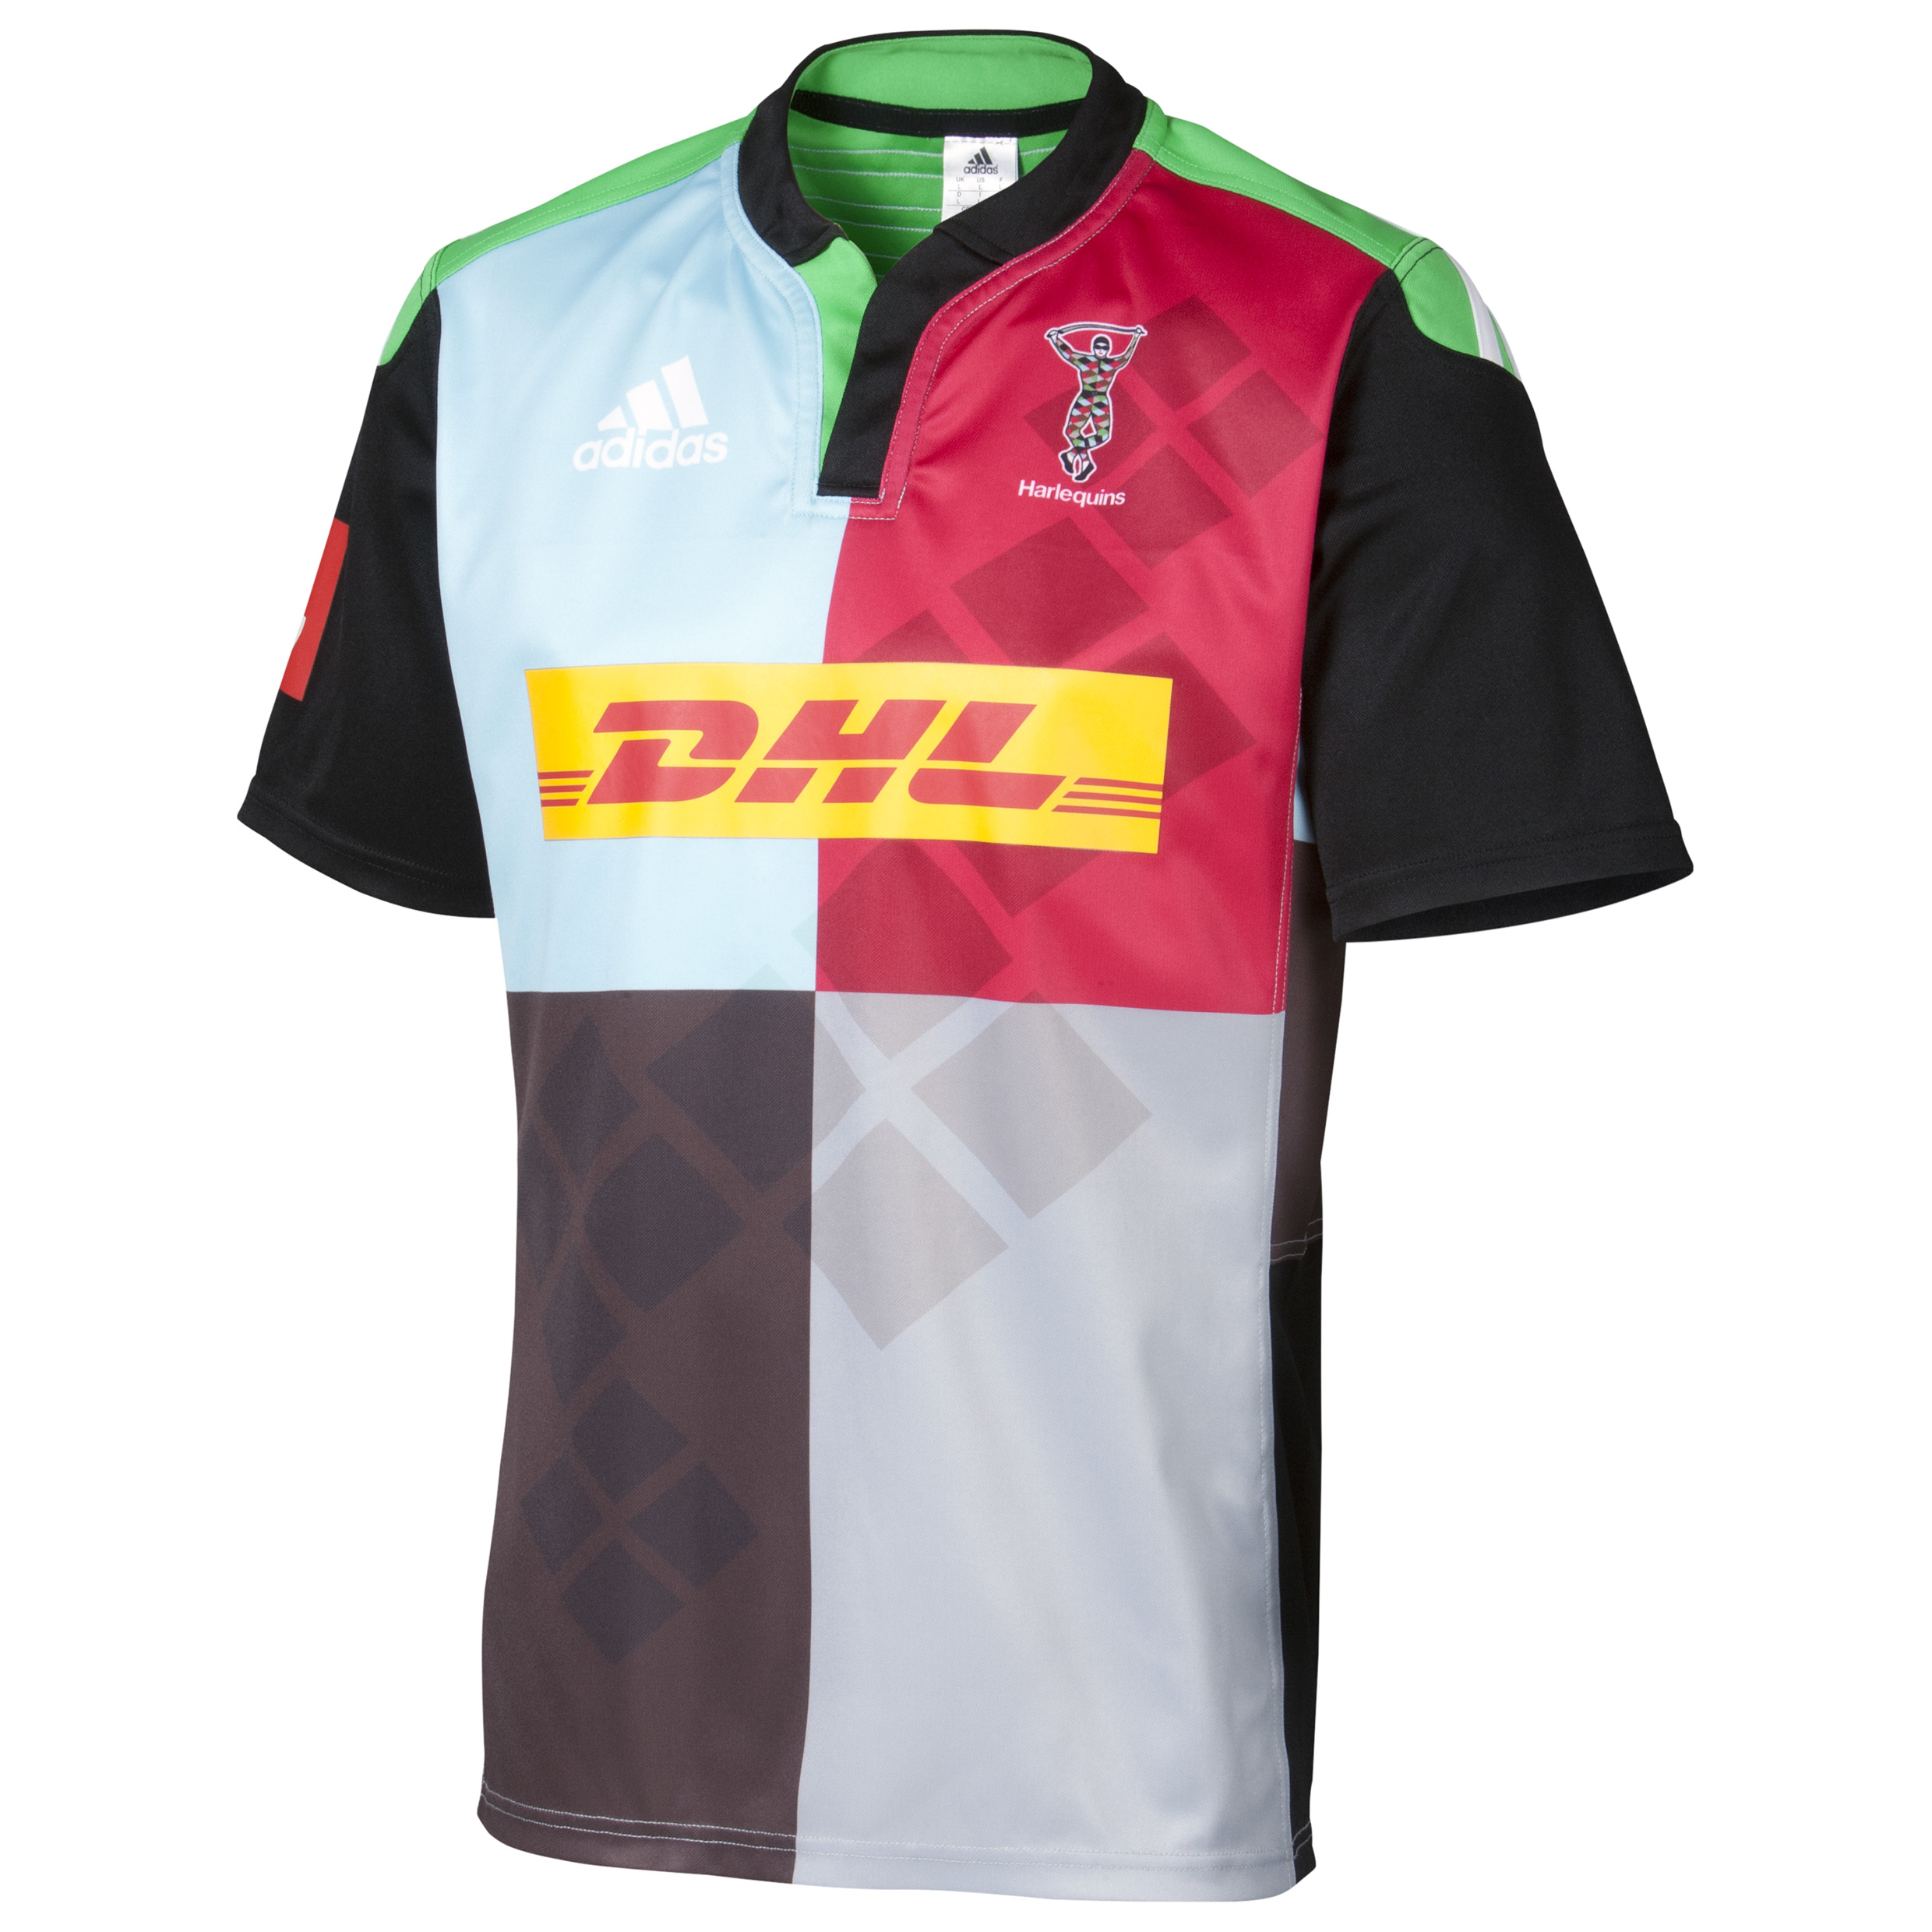 Harlequins Home Short Sleeve Shirt 2014/15 Black